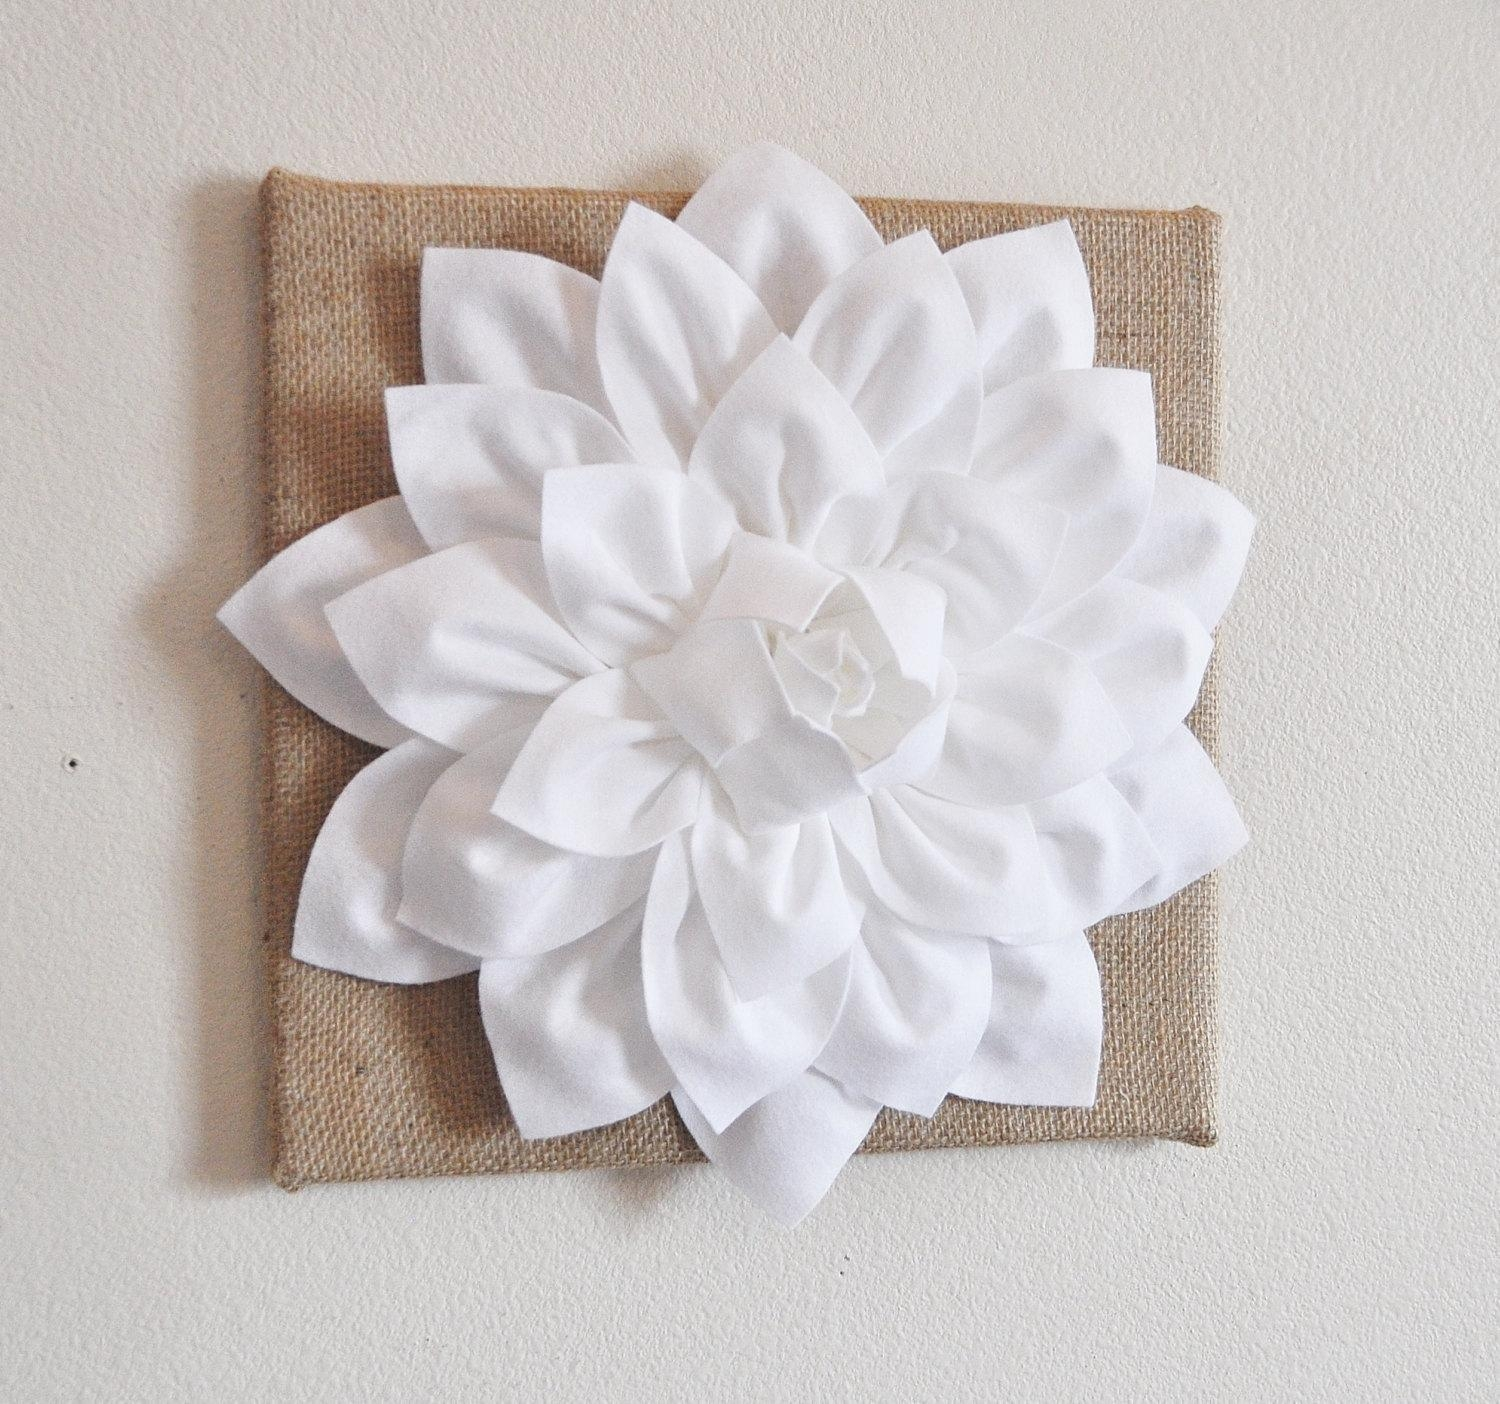 Wall Flower White Dahlia On Burlap 12 X12 Canvas Wall Intended For White 3D Wall Art (View 5 of 20)